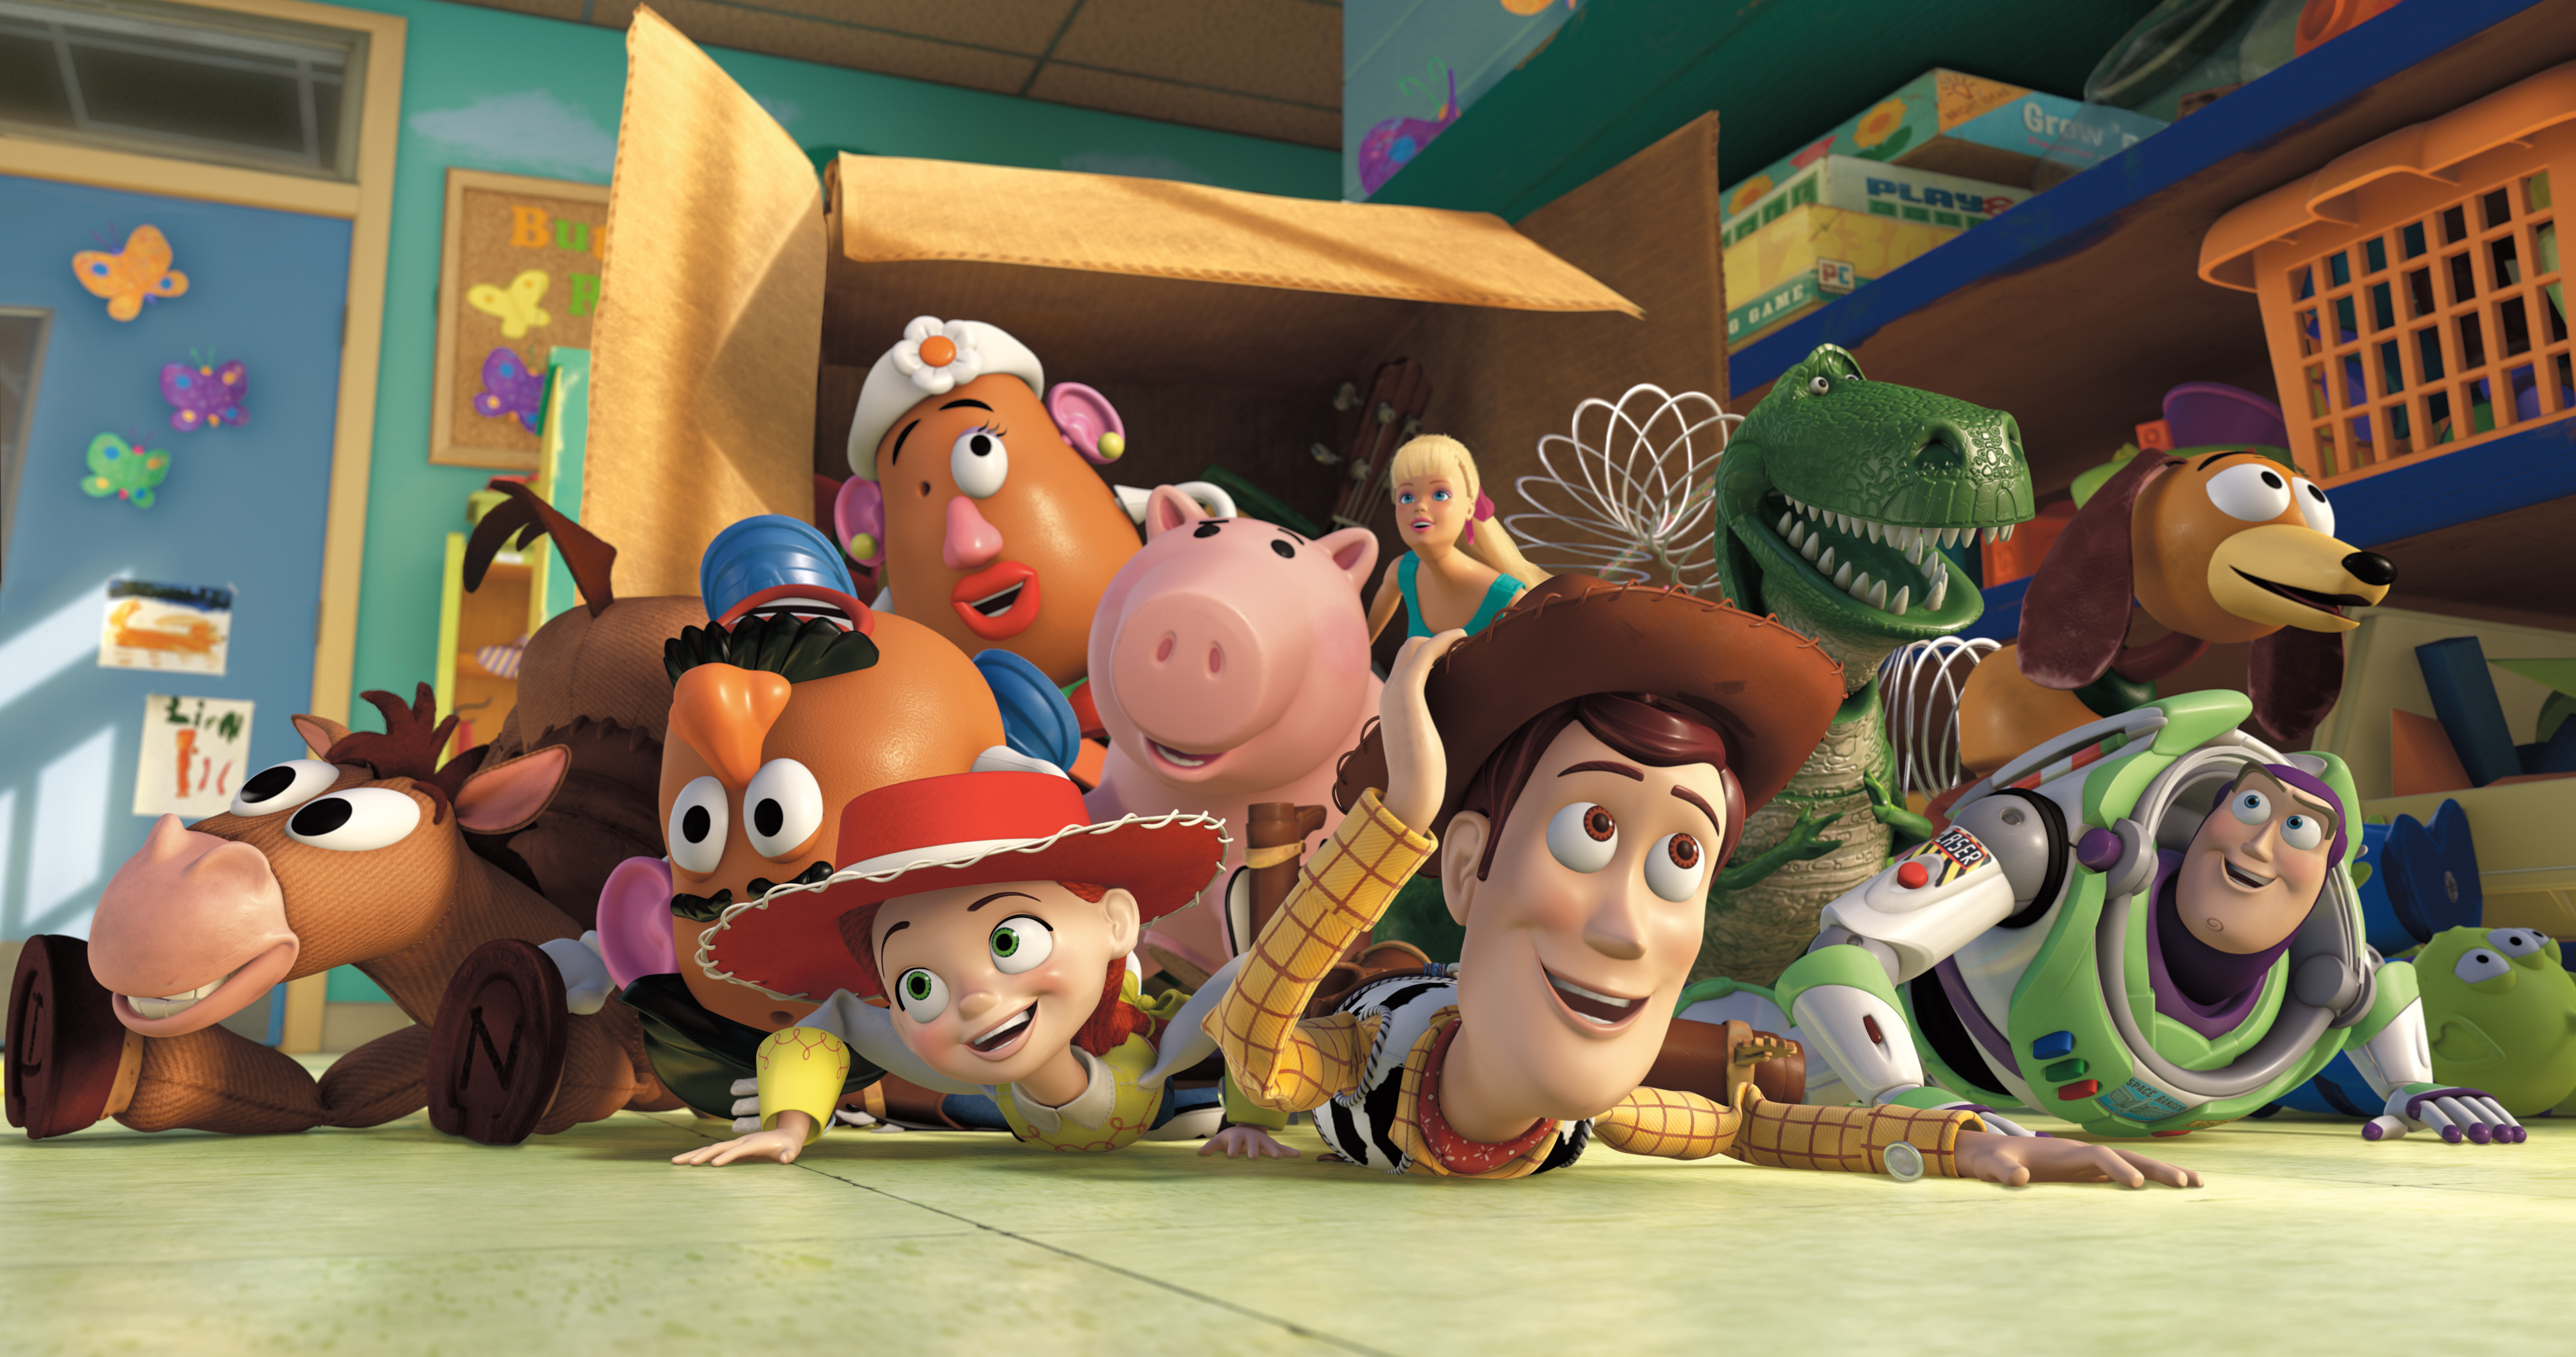 Who will join the gang in Toy Story 4?